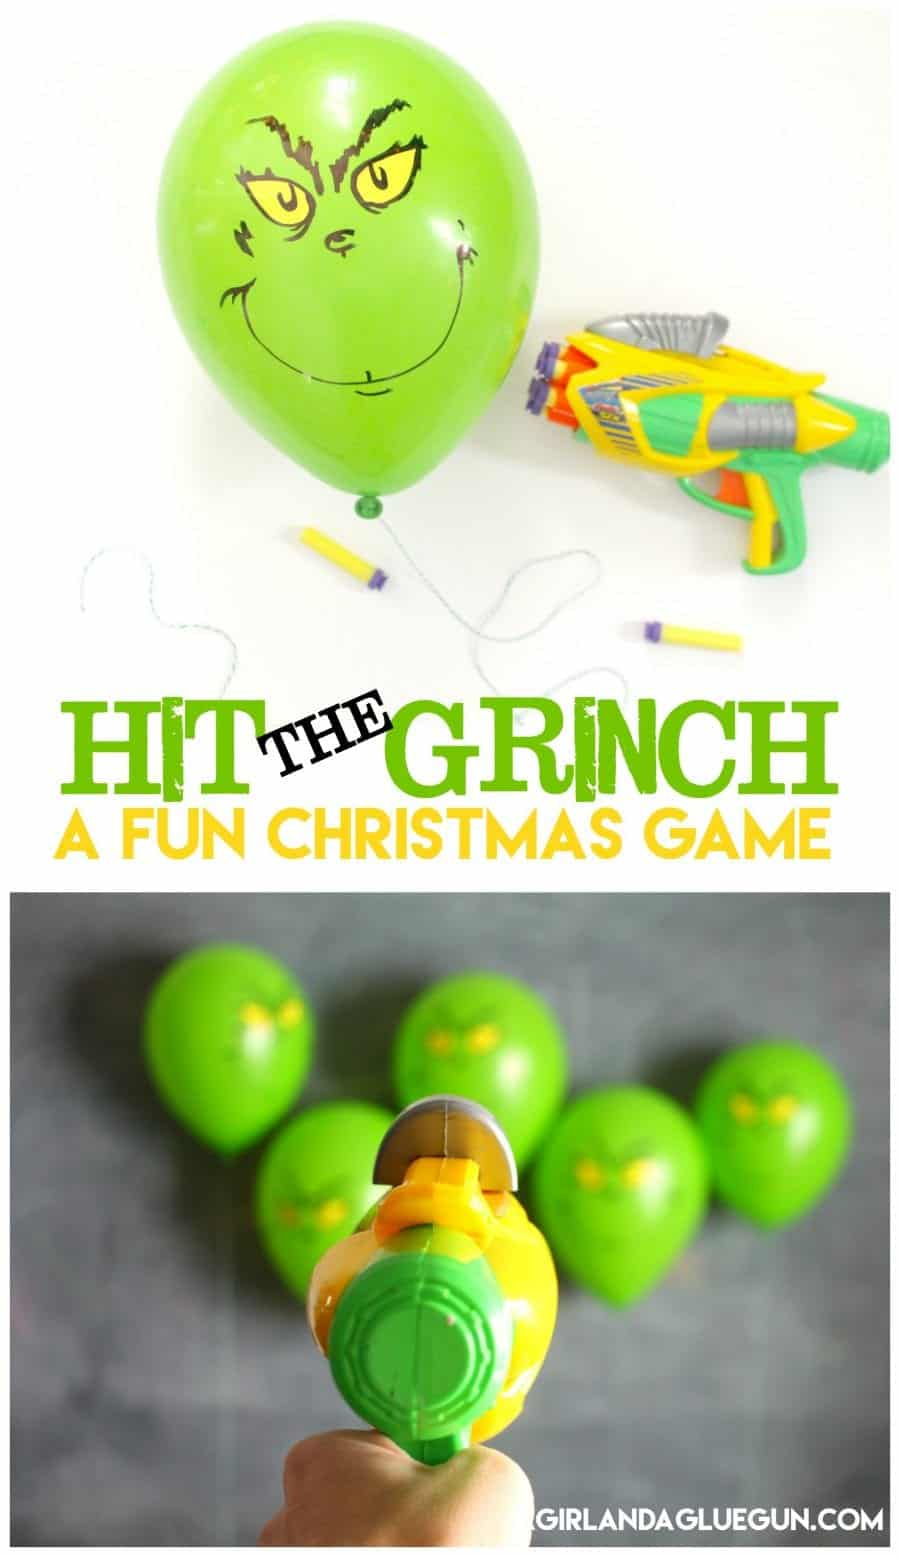 hit-the-grinch-a-fun-christmas-game